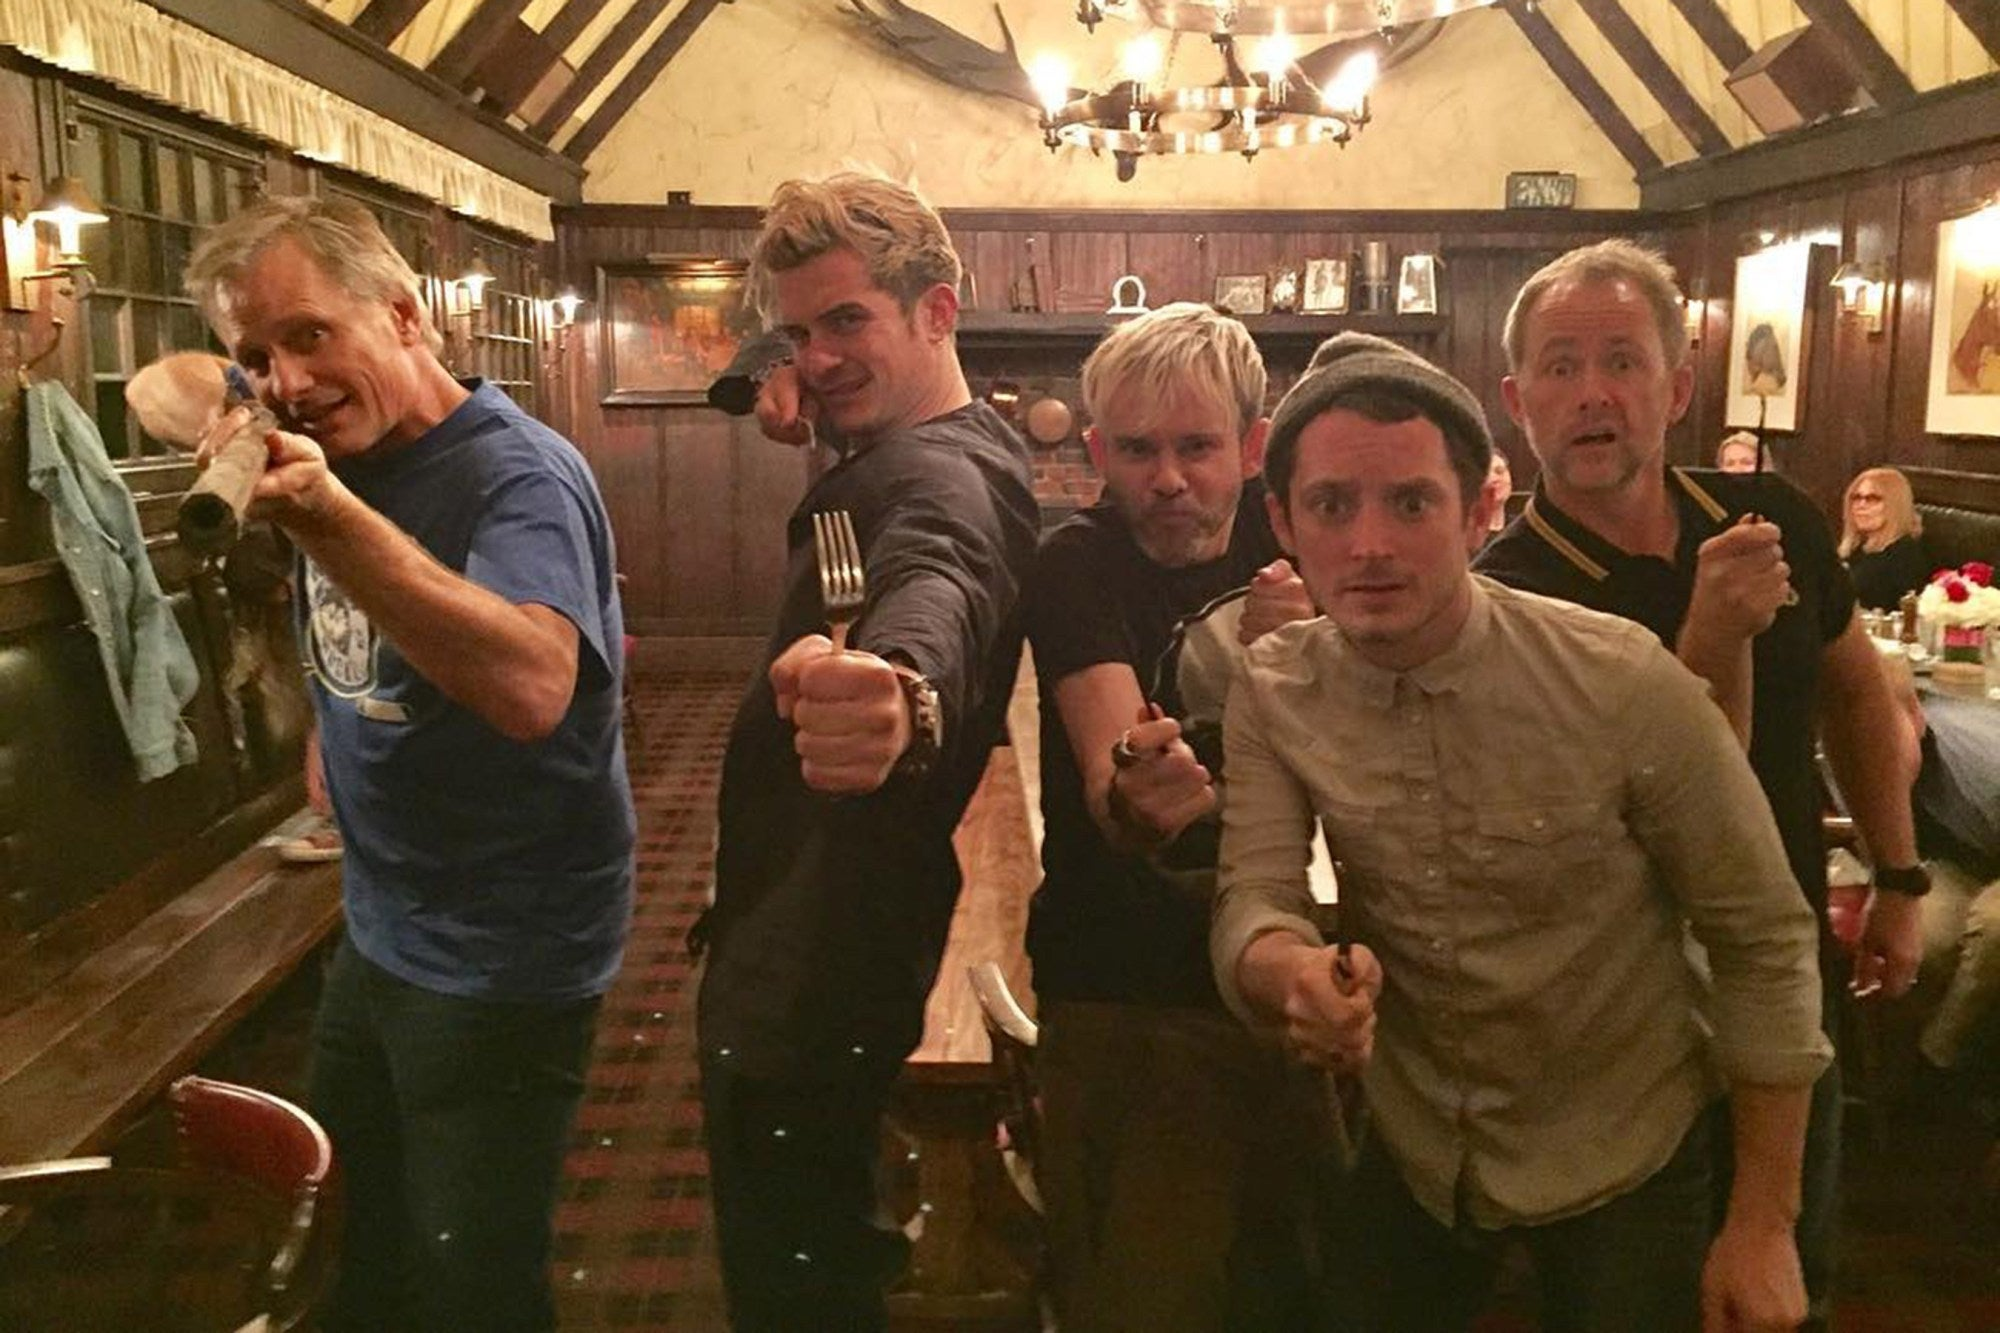 These Lord Of The Rings Reunion Photos Show There's Still Joy In The World